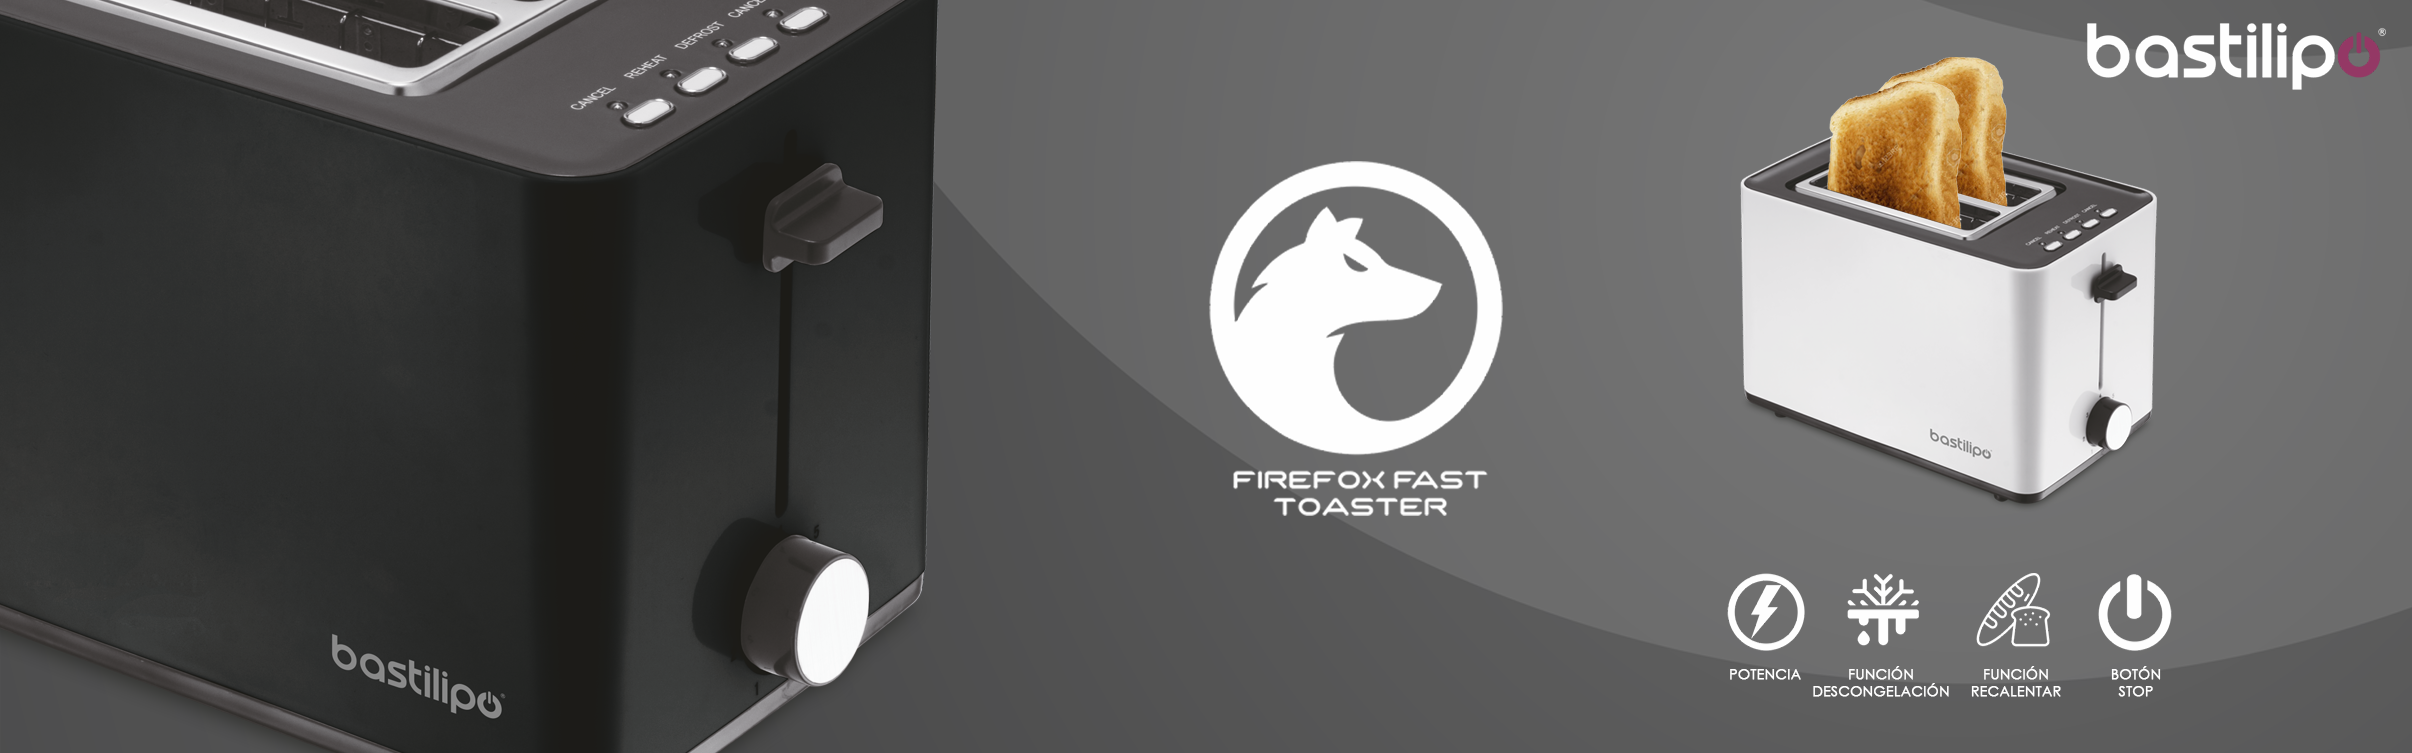 banner_FIREFOX_FAST_TOASTER